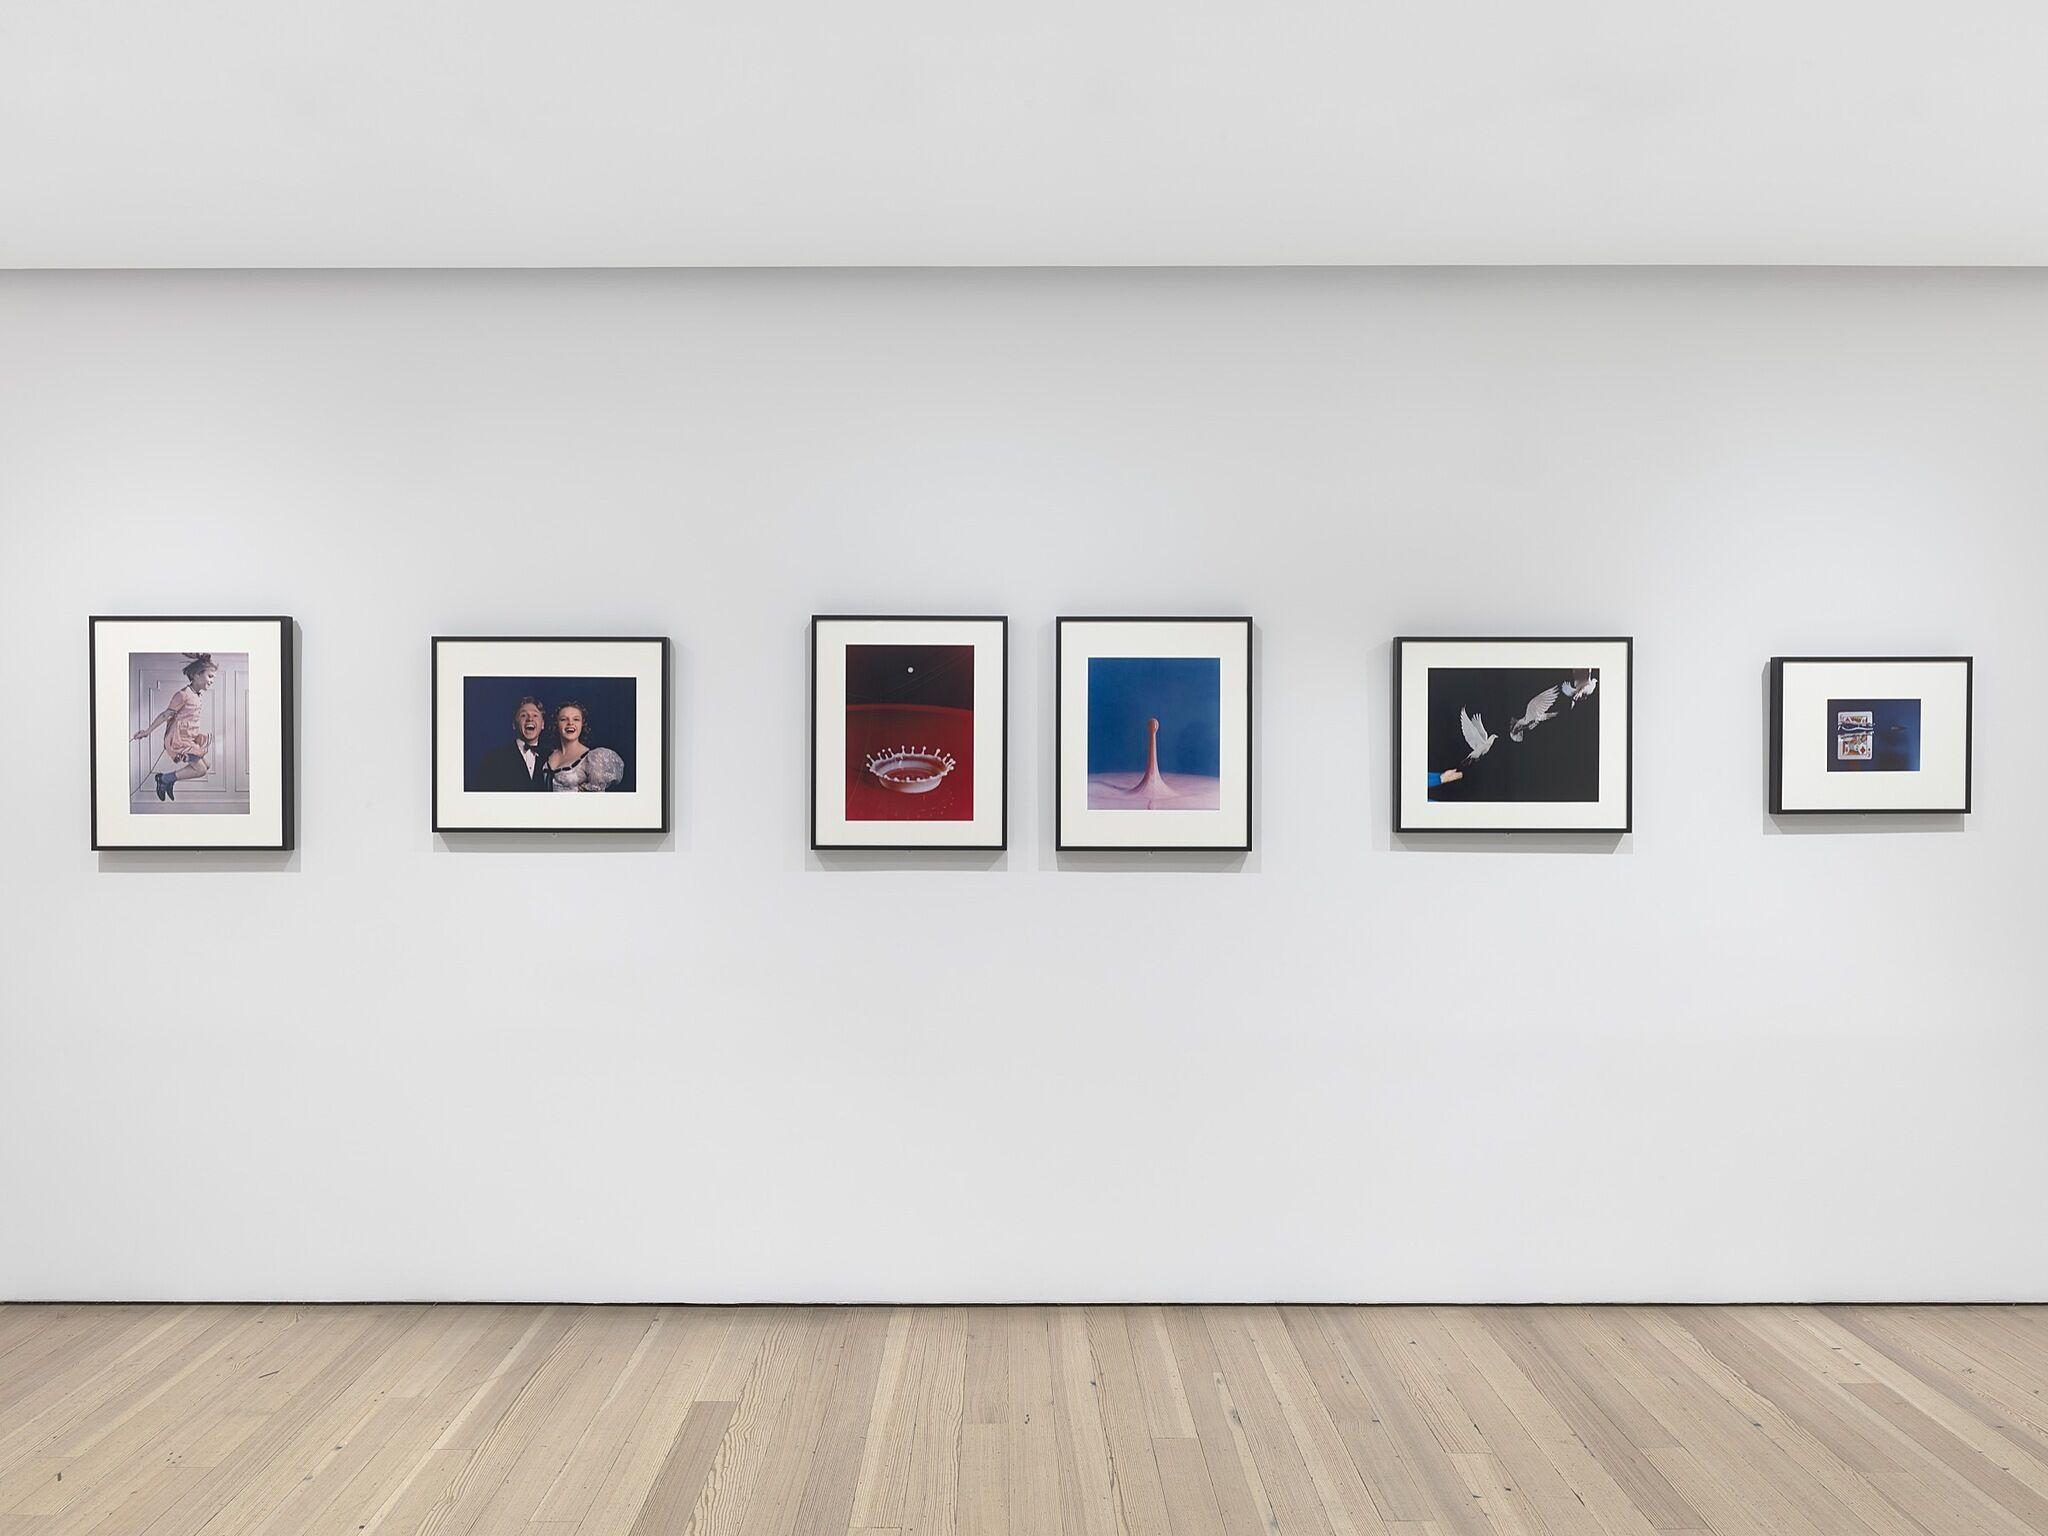 Various photographs framed on a gallery wall.